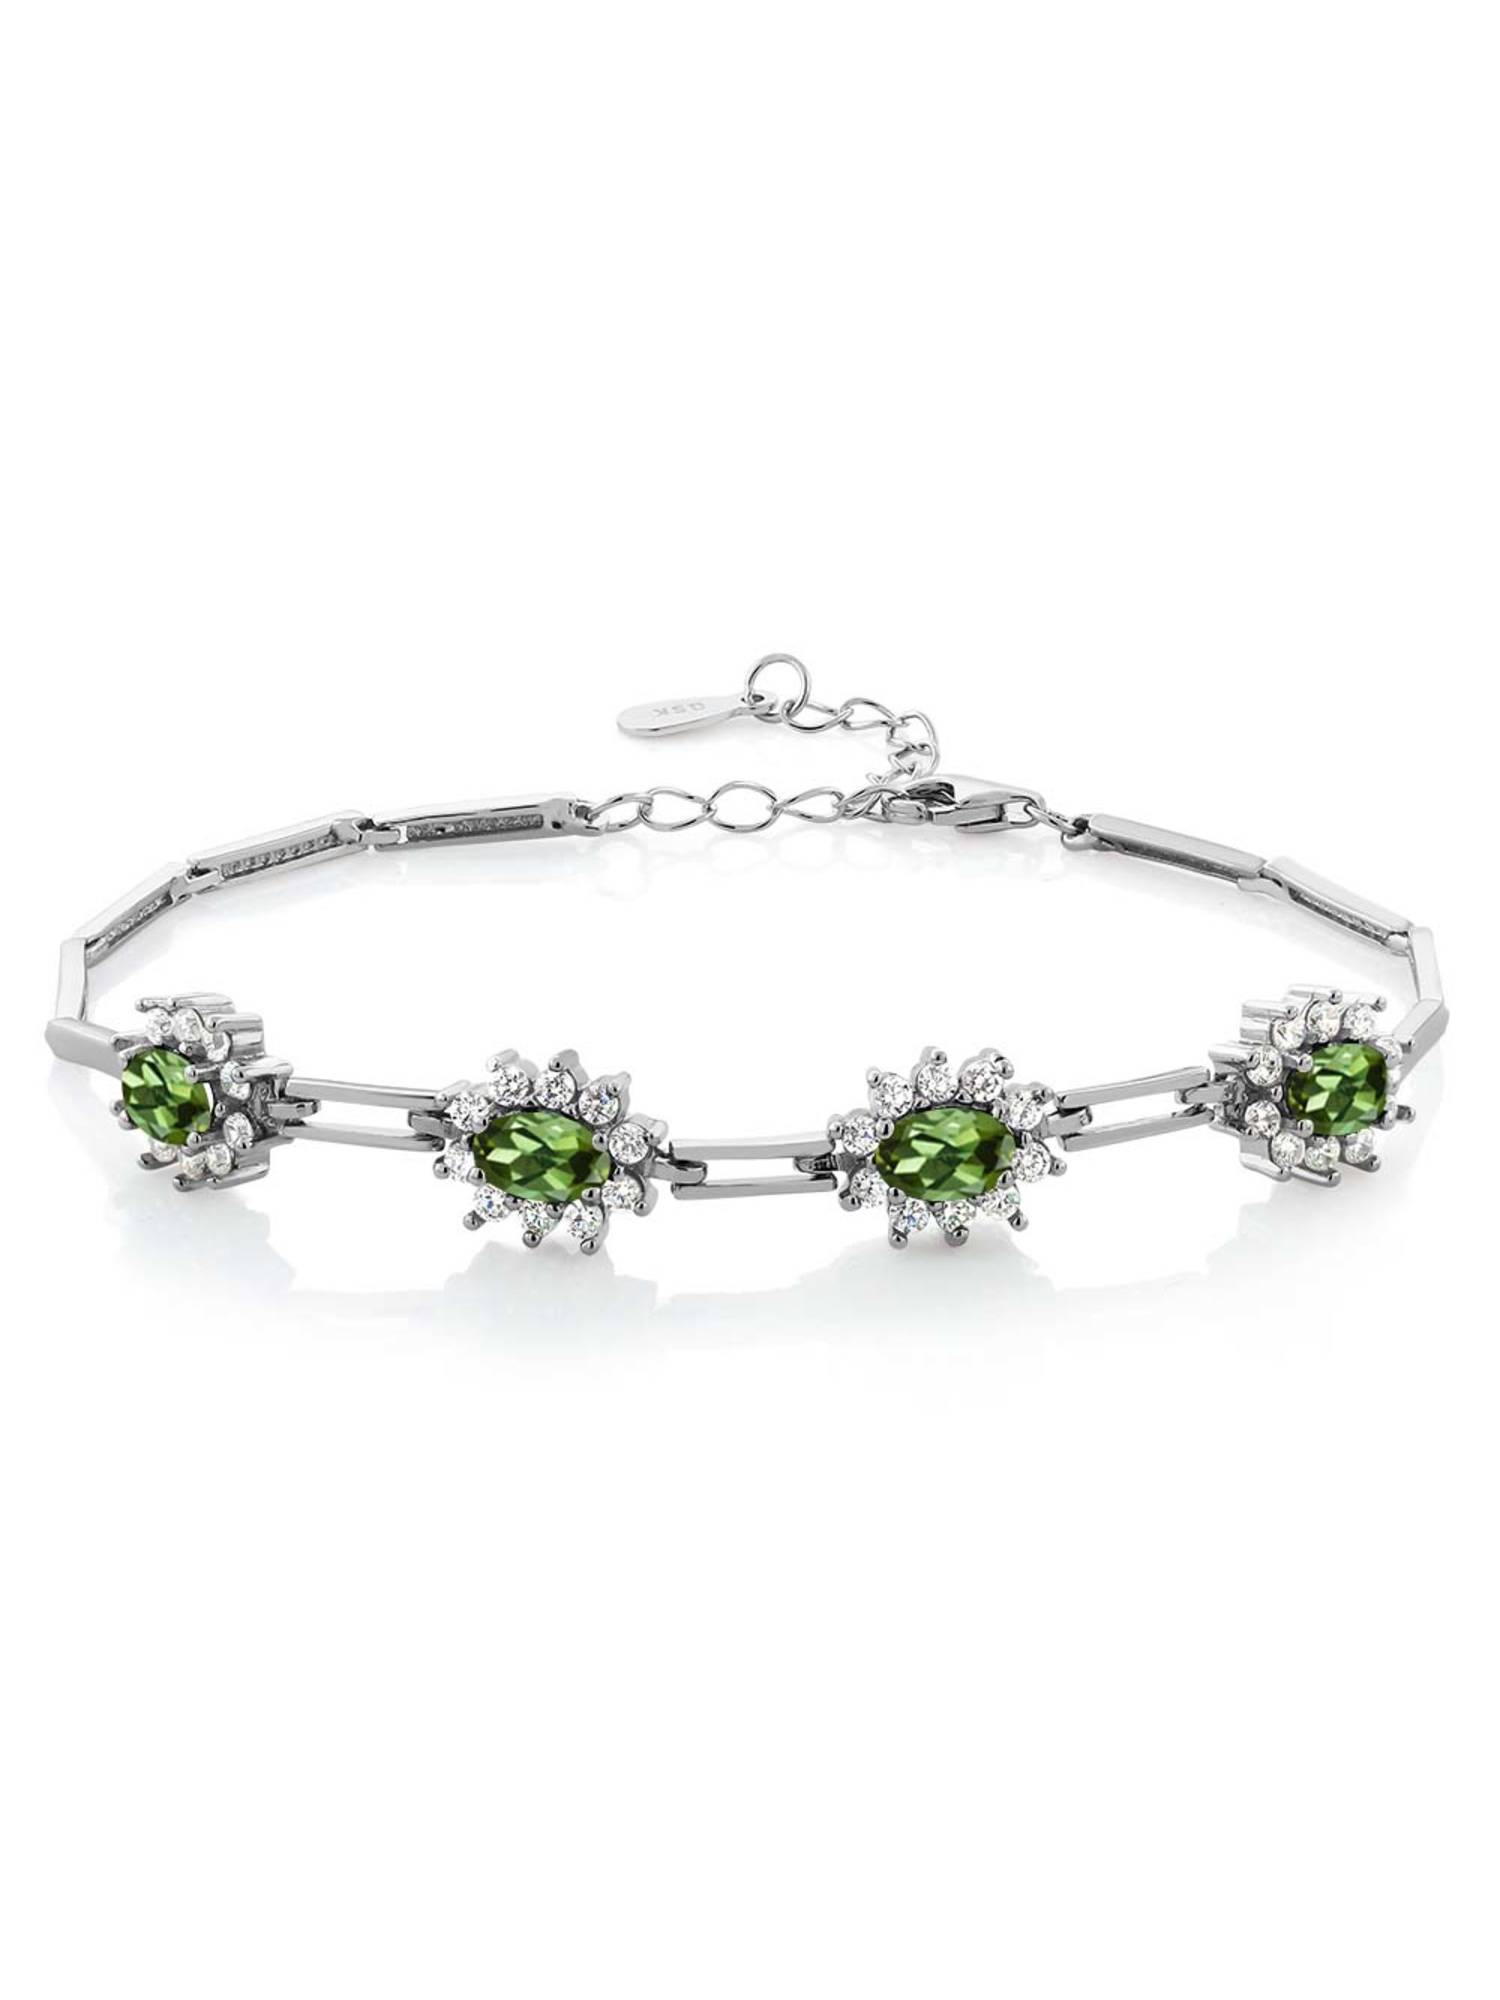 3.60 Ct Oval Green Tourmaline 925 Sterling Silver Bracelet by